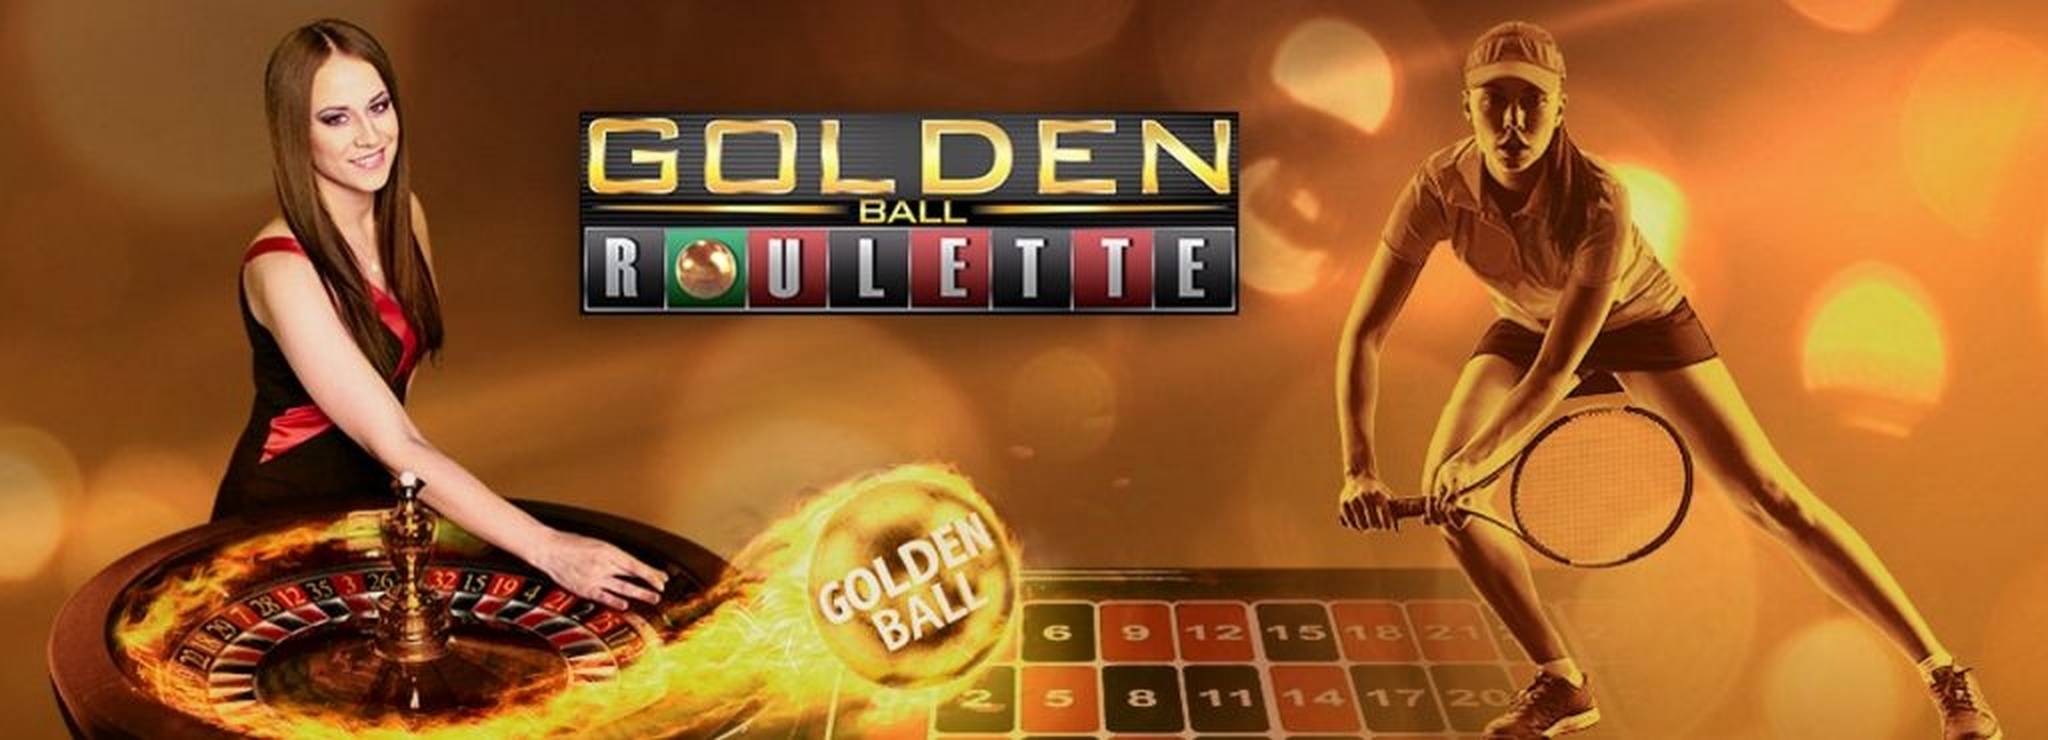 The Roulette Golden Ball Live casino Online Slot Demo Game by Extreme Live Gaming